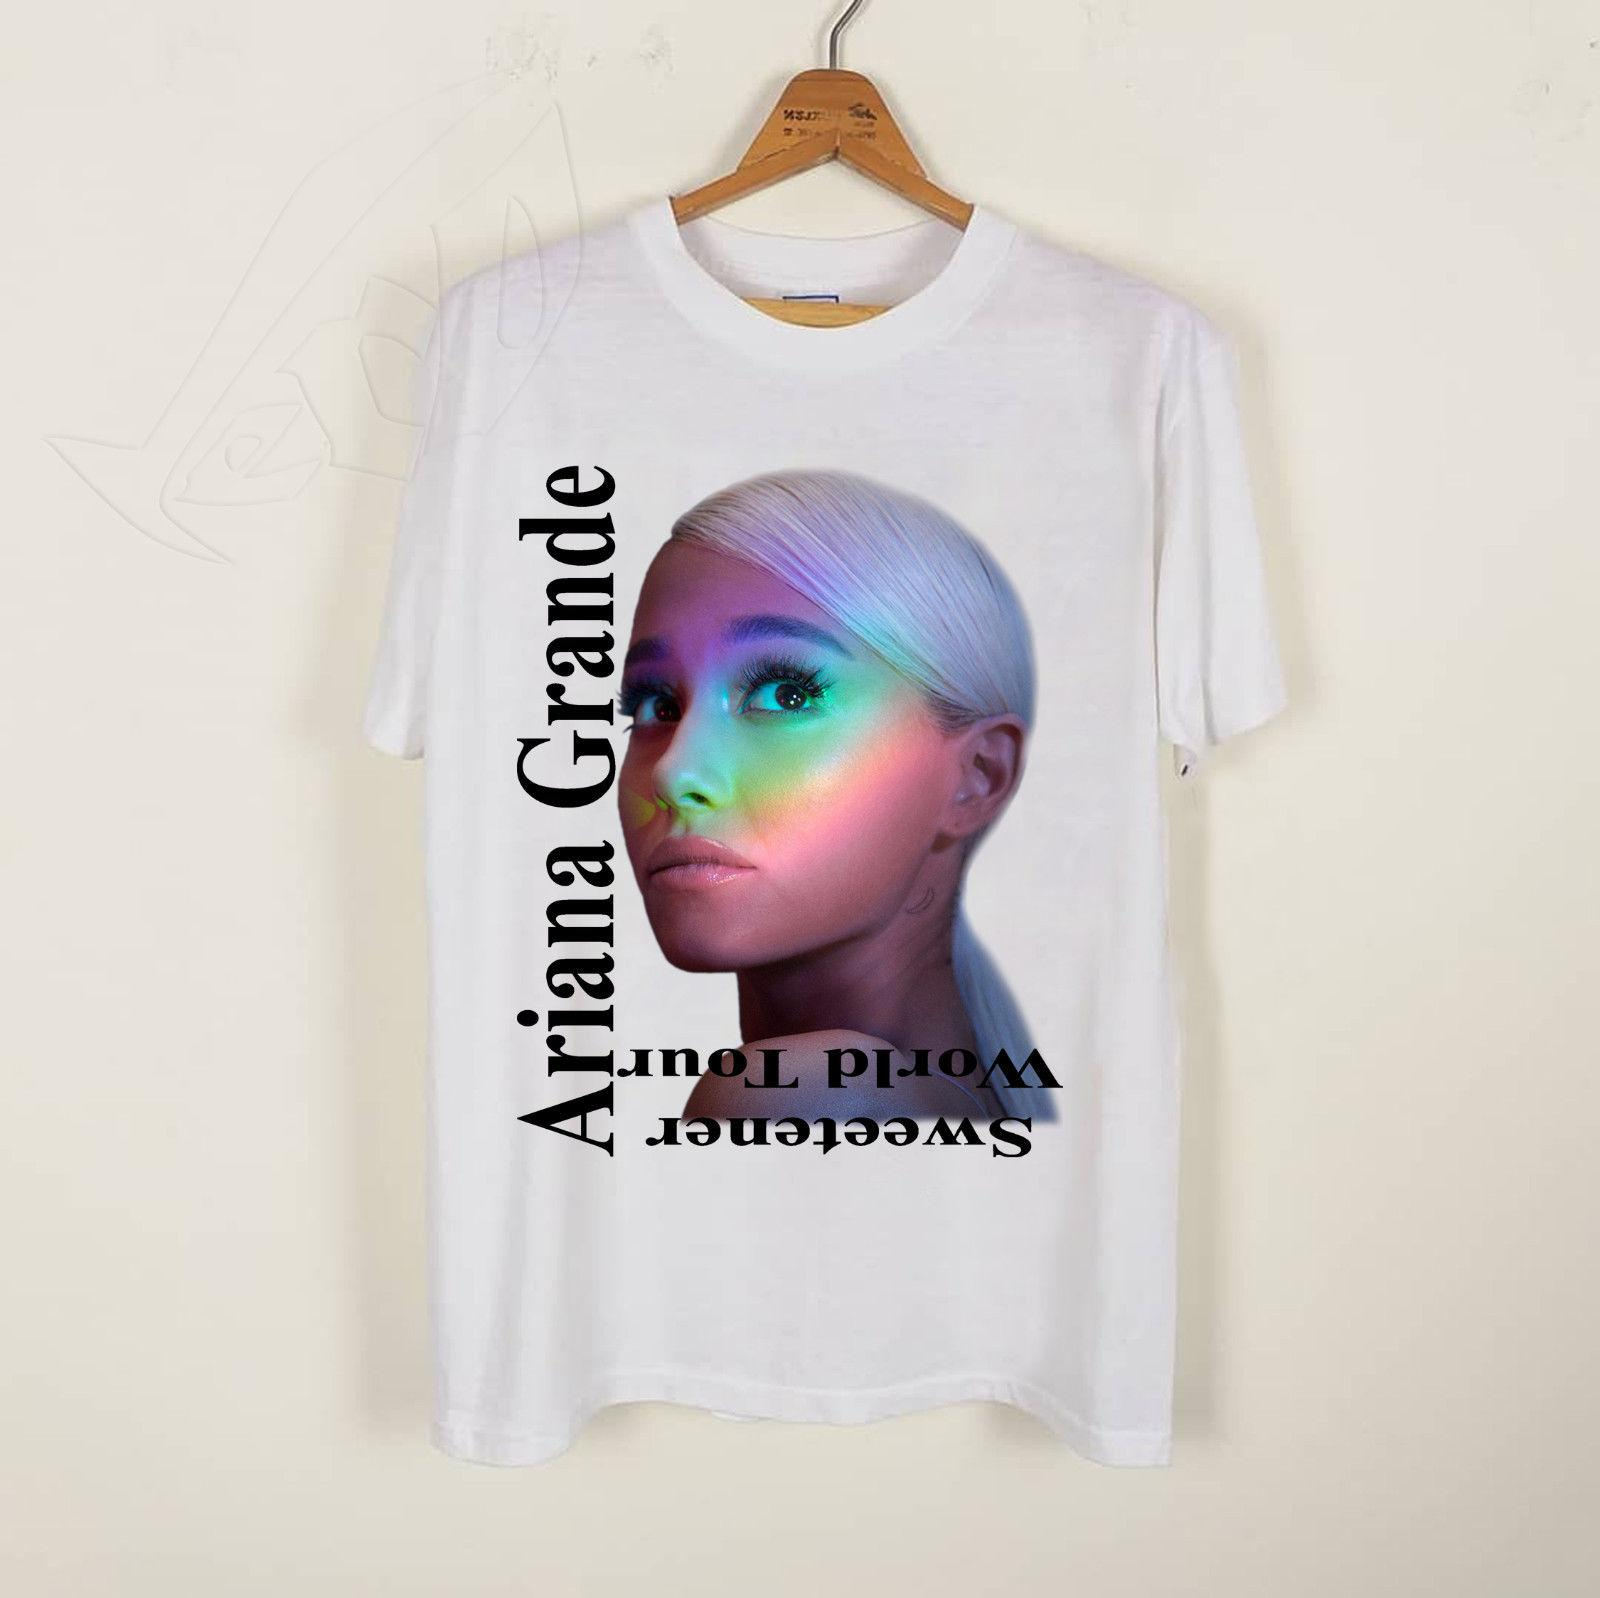 ce98d0a2 Ariana Grande Sweetener WordTour 2019 White T Shirt Size S 5XL Men Women  Unisex Fashion Tshirt Cool Tee Shirts Cheap Business Tee Shirts Printing  From ...